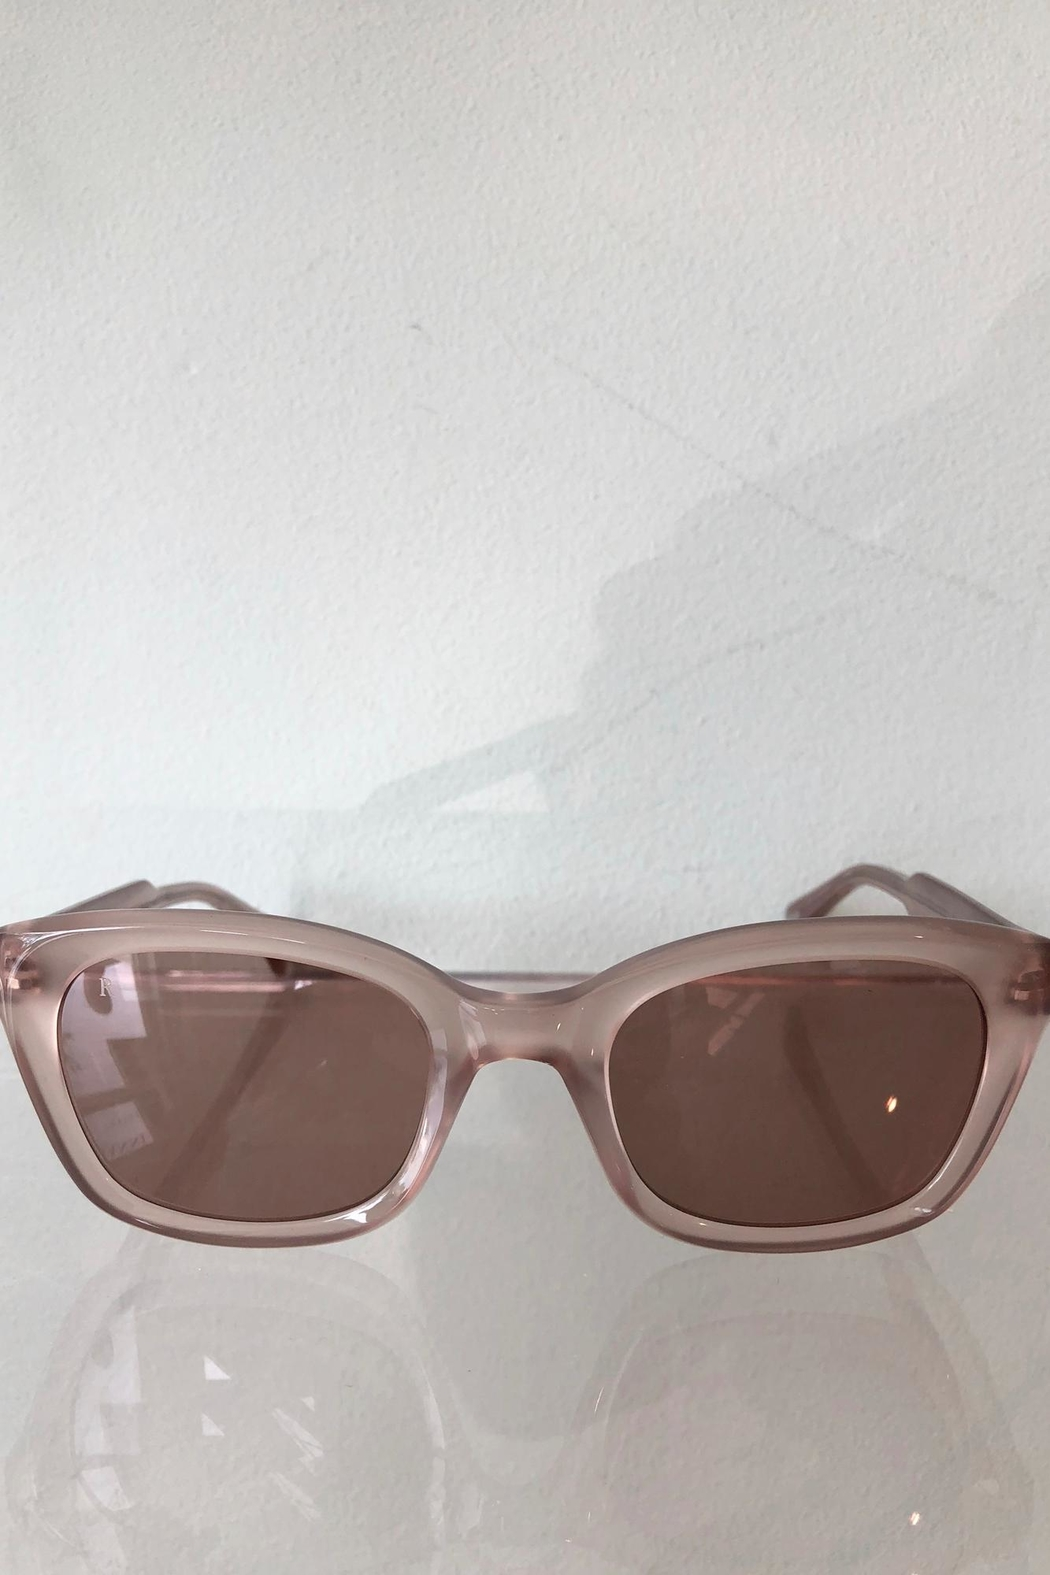 037c82778f RAEN Clemente Sunglasses from Greenville by Augusta Twenty — Shoptiques